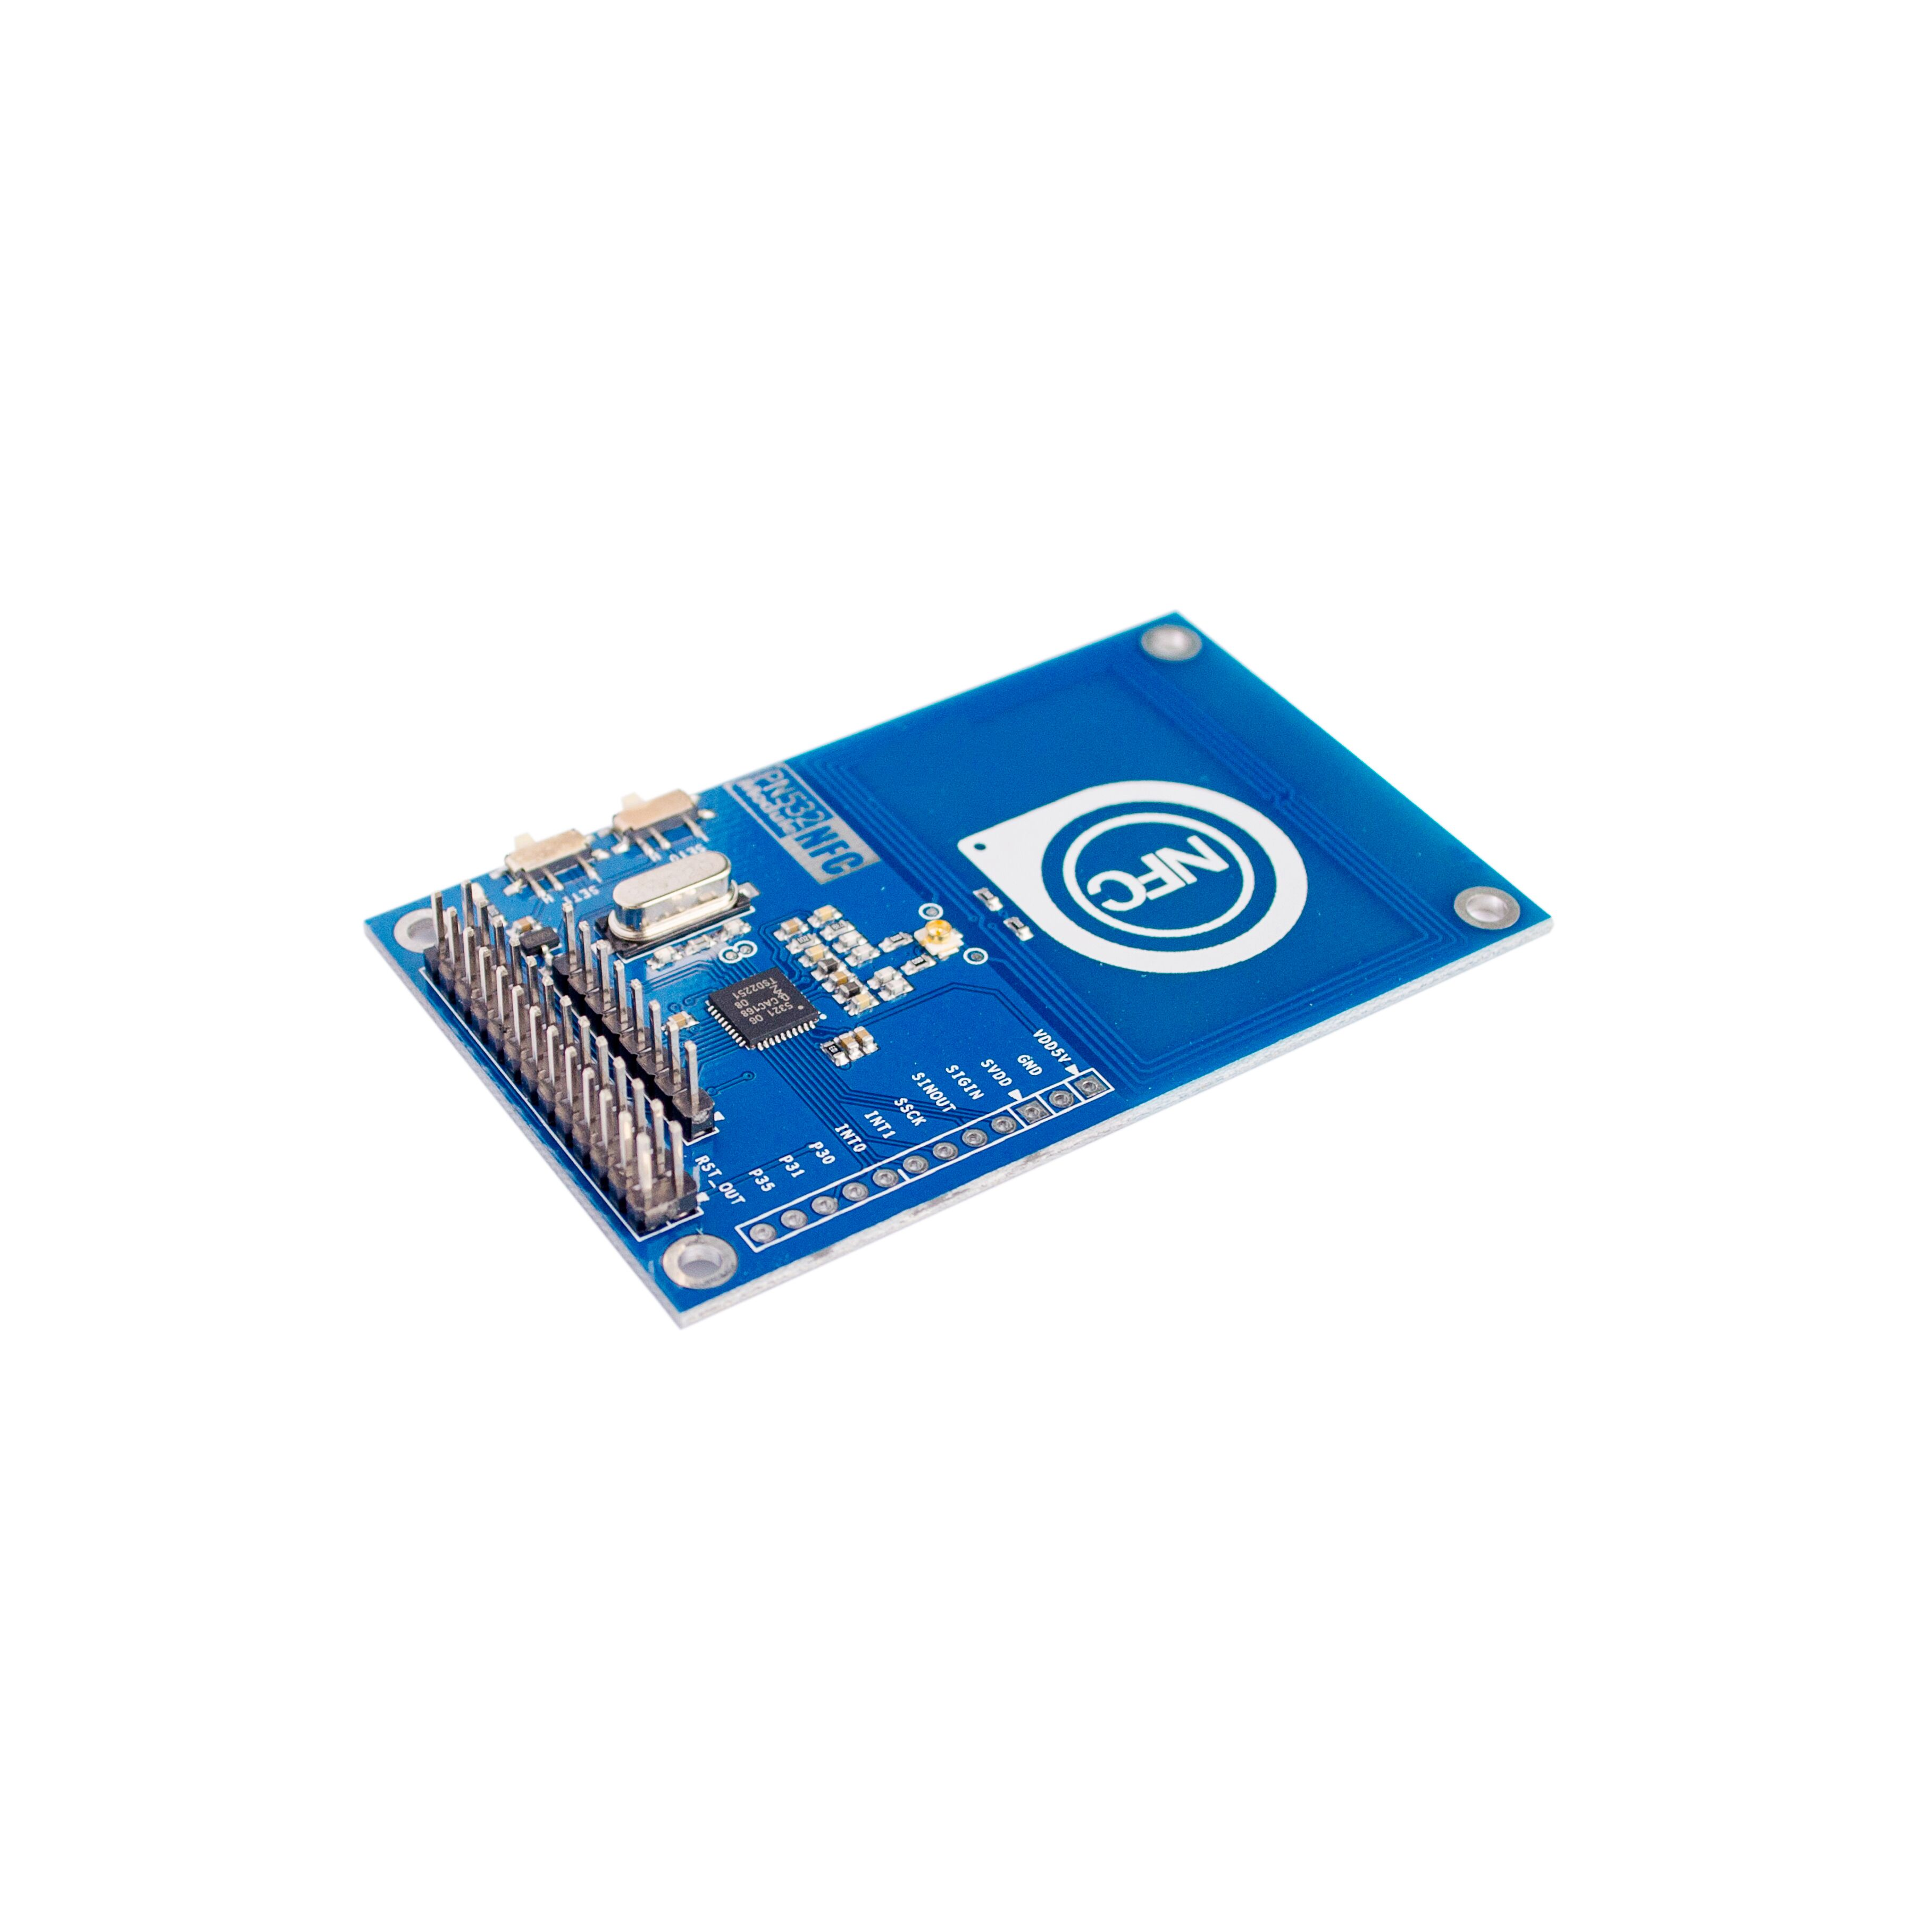 US $3 89 5% OFF|PN532 NFC Precise RFID IC Card Reader Module 13 56MHz  Raspberry PI-in Integrated Circuits from Electronic Components & Supplies  on